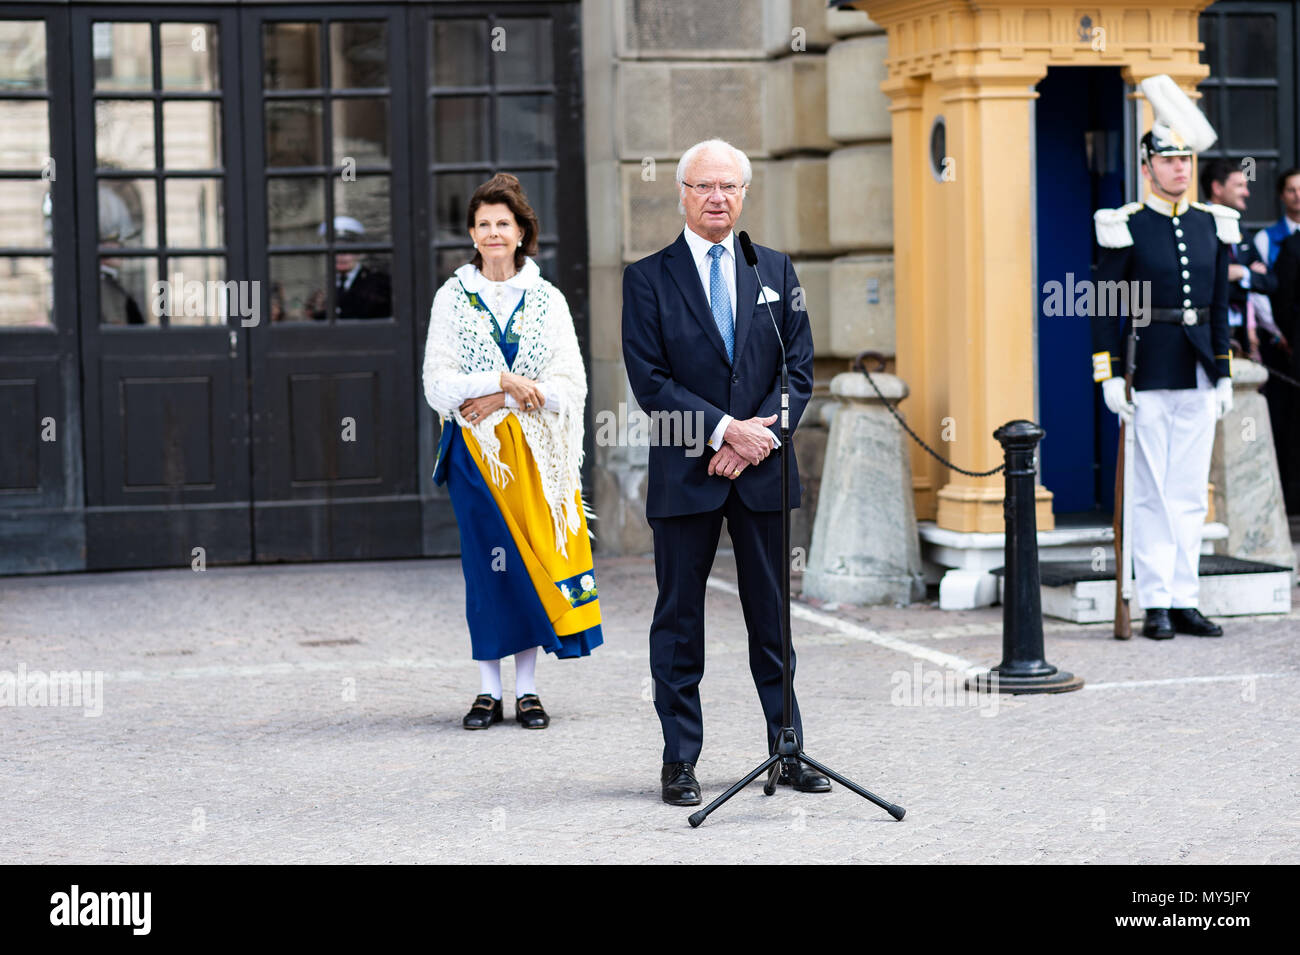 Stockholm, Sweden, June 6, 2018. Swedish National Day is celebrated at the Royal Palace with 'Open Castle' - a full day of free entrance to the Castle's museums, exhibitions and activities. The royal couple, King Carl XVI Gustaf and Queen Silvia, opens the western gate of the castle from the outer courtyard. Credit: Barbro Bergfeldt/Alamy Live News Stock Photo